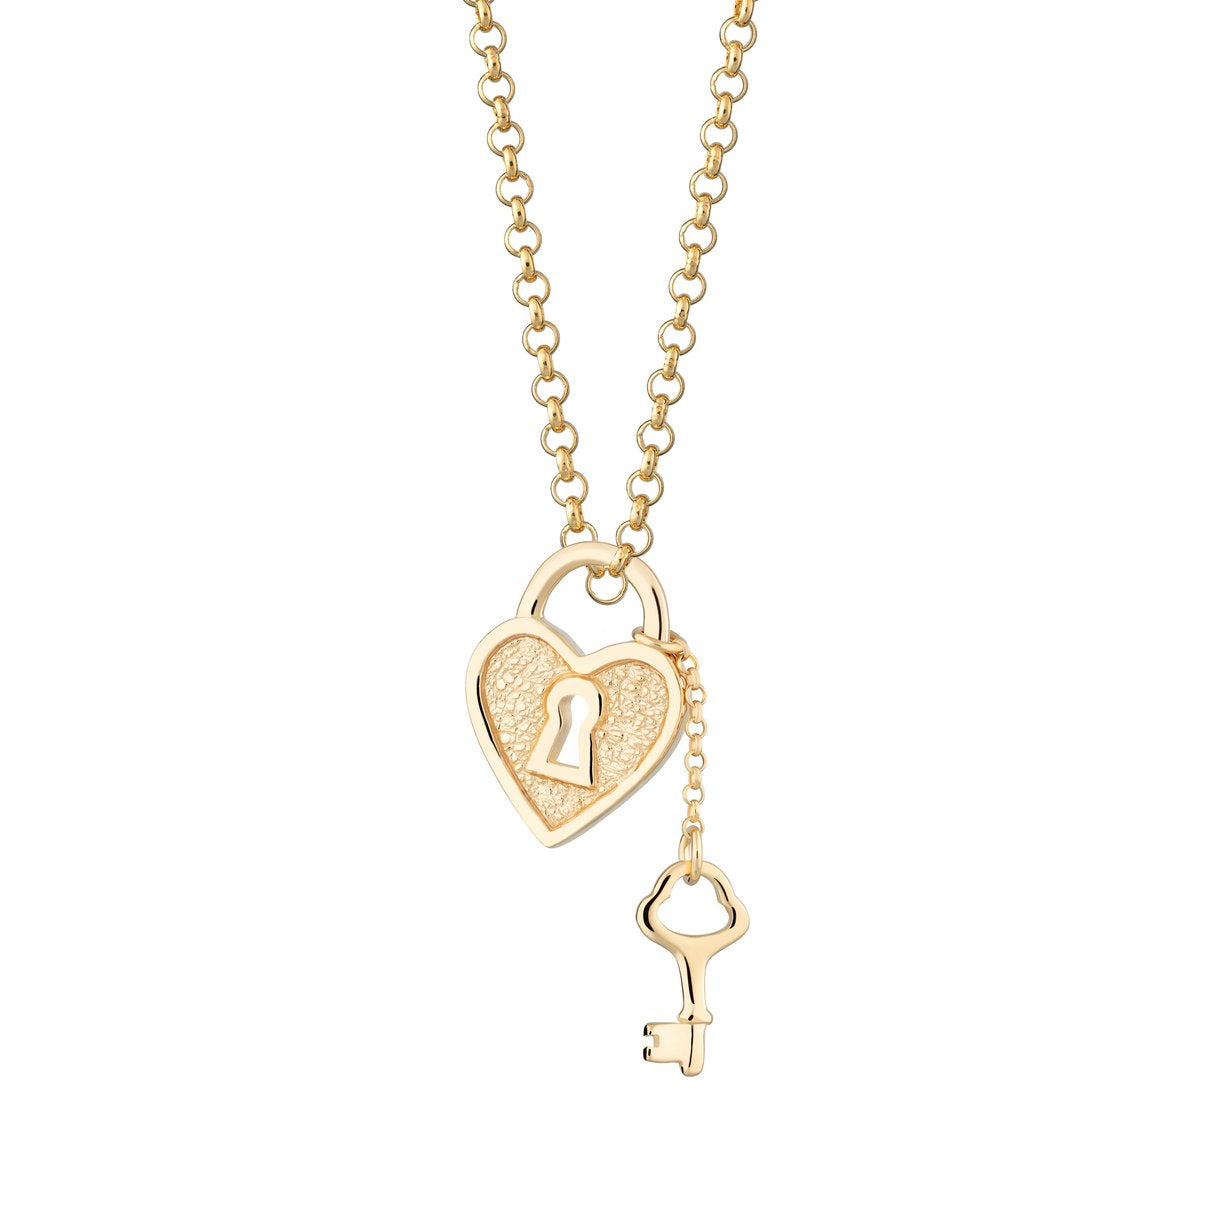 Heart Shaped Padlock and Key Necklace - Gold